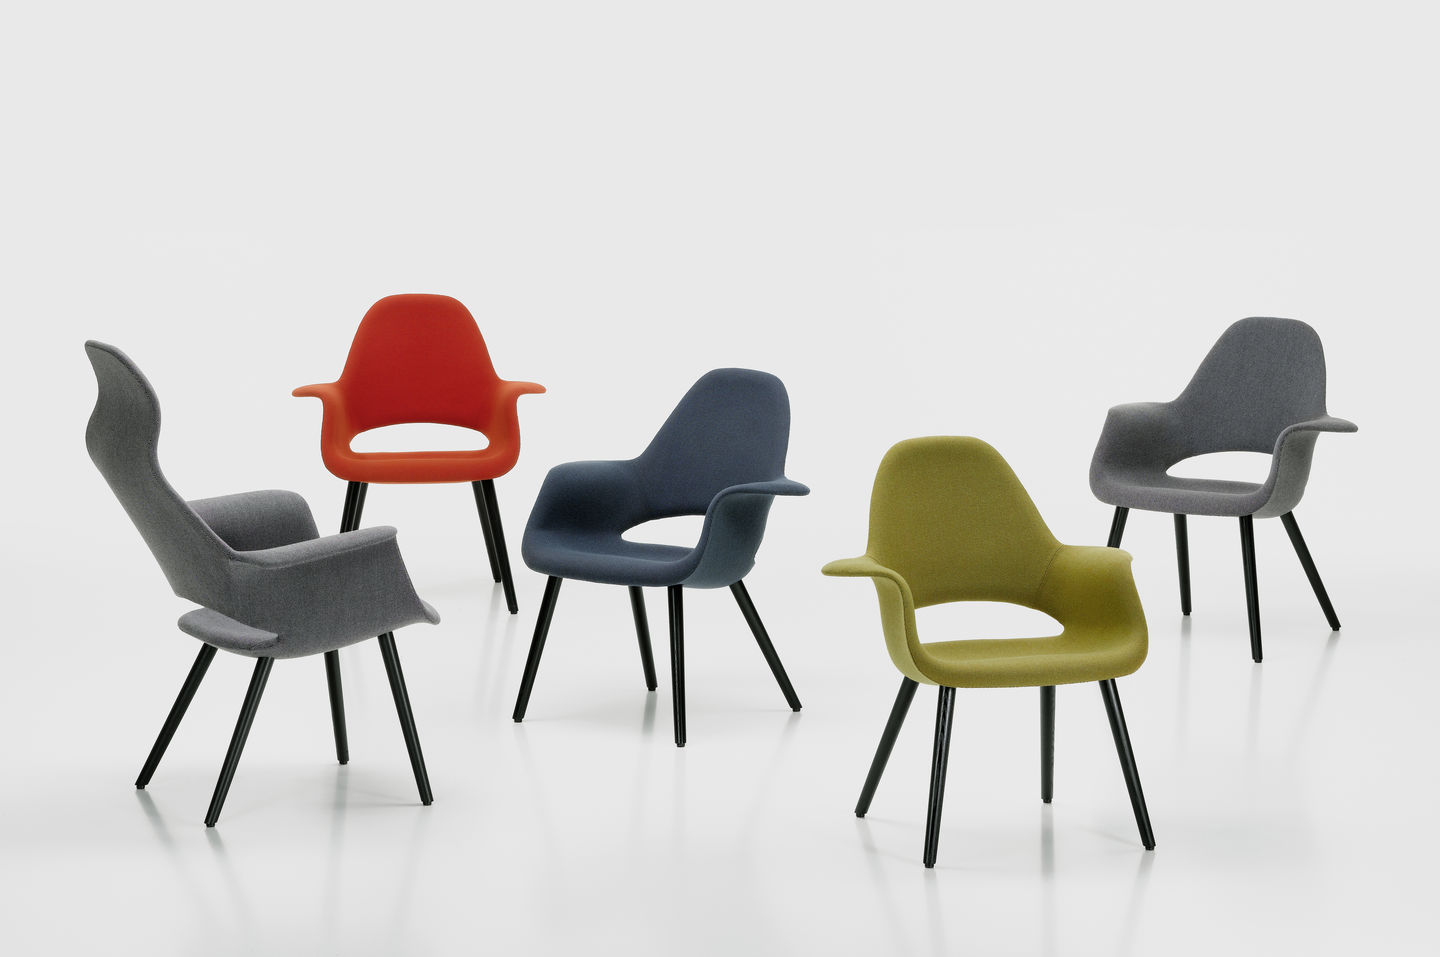 Developed As A Joint Project By Charles Eames And Eero Saarinen The Organic Chair Is Considered One Of Most Seminal Creations Mid Century Modern